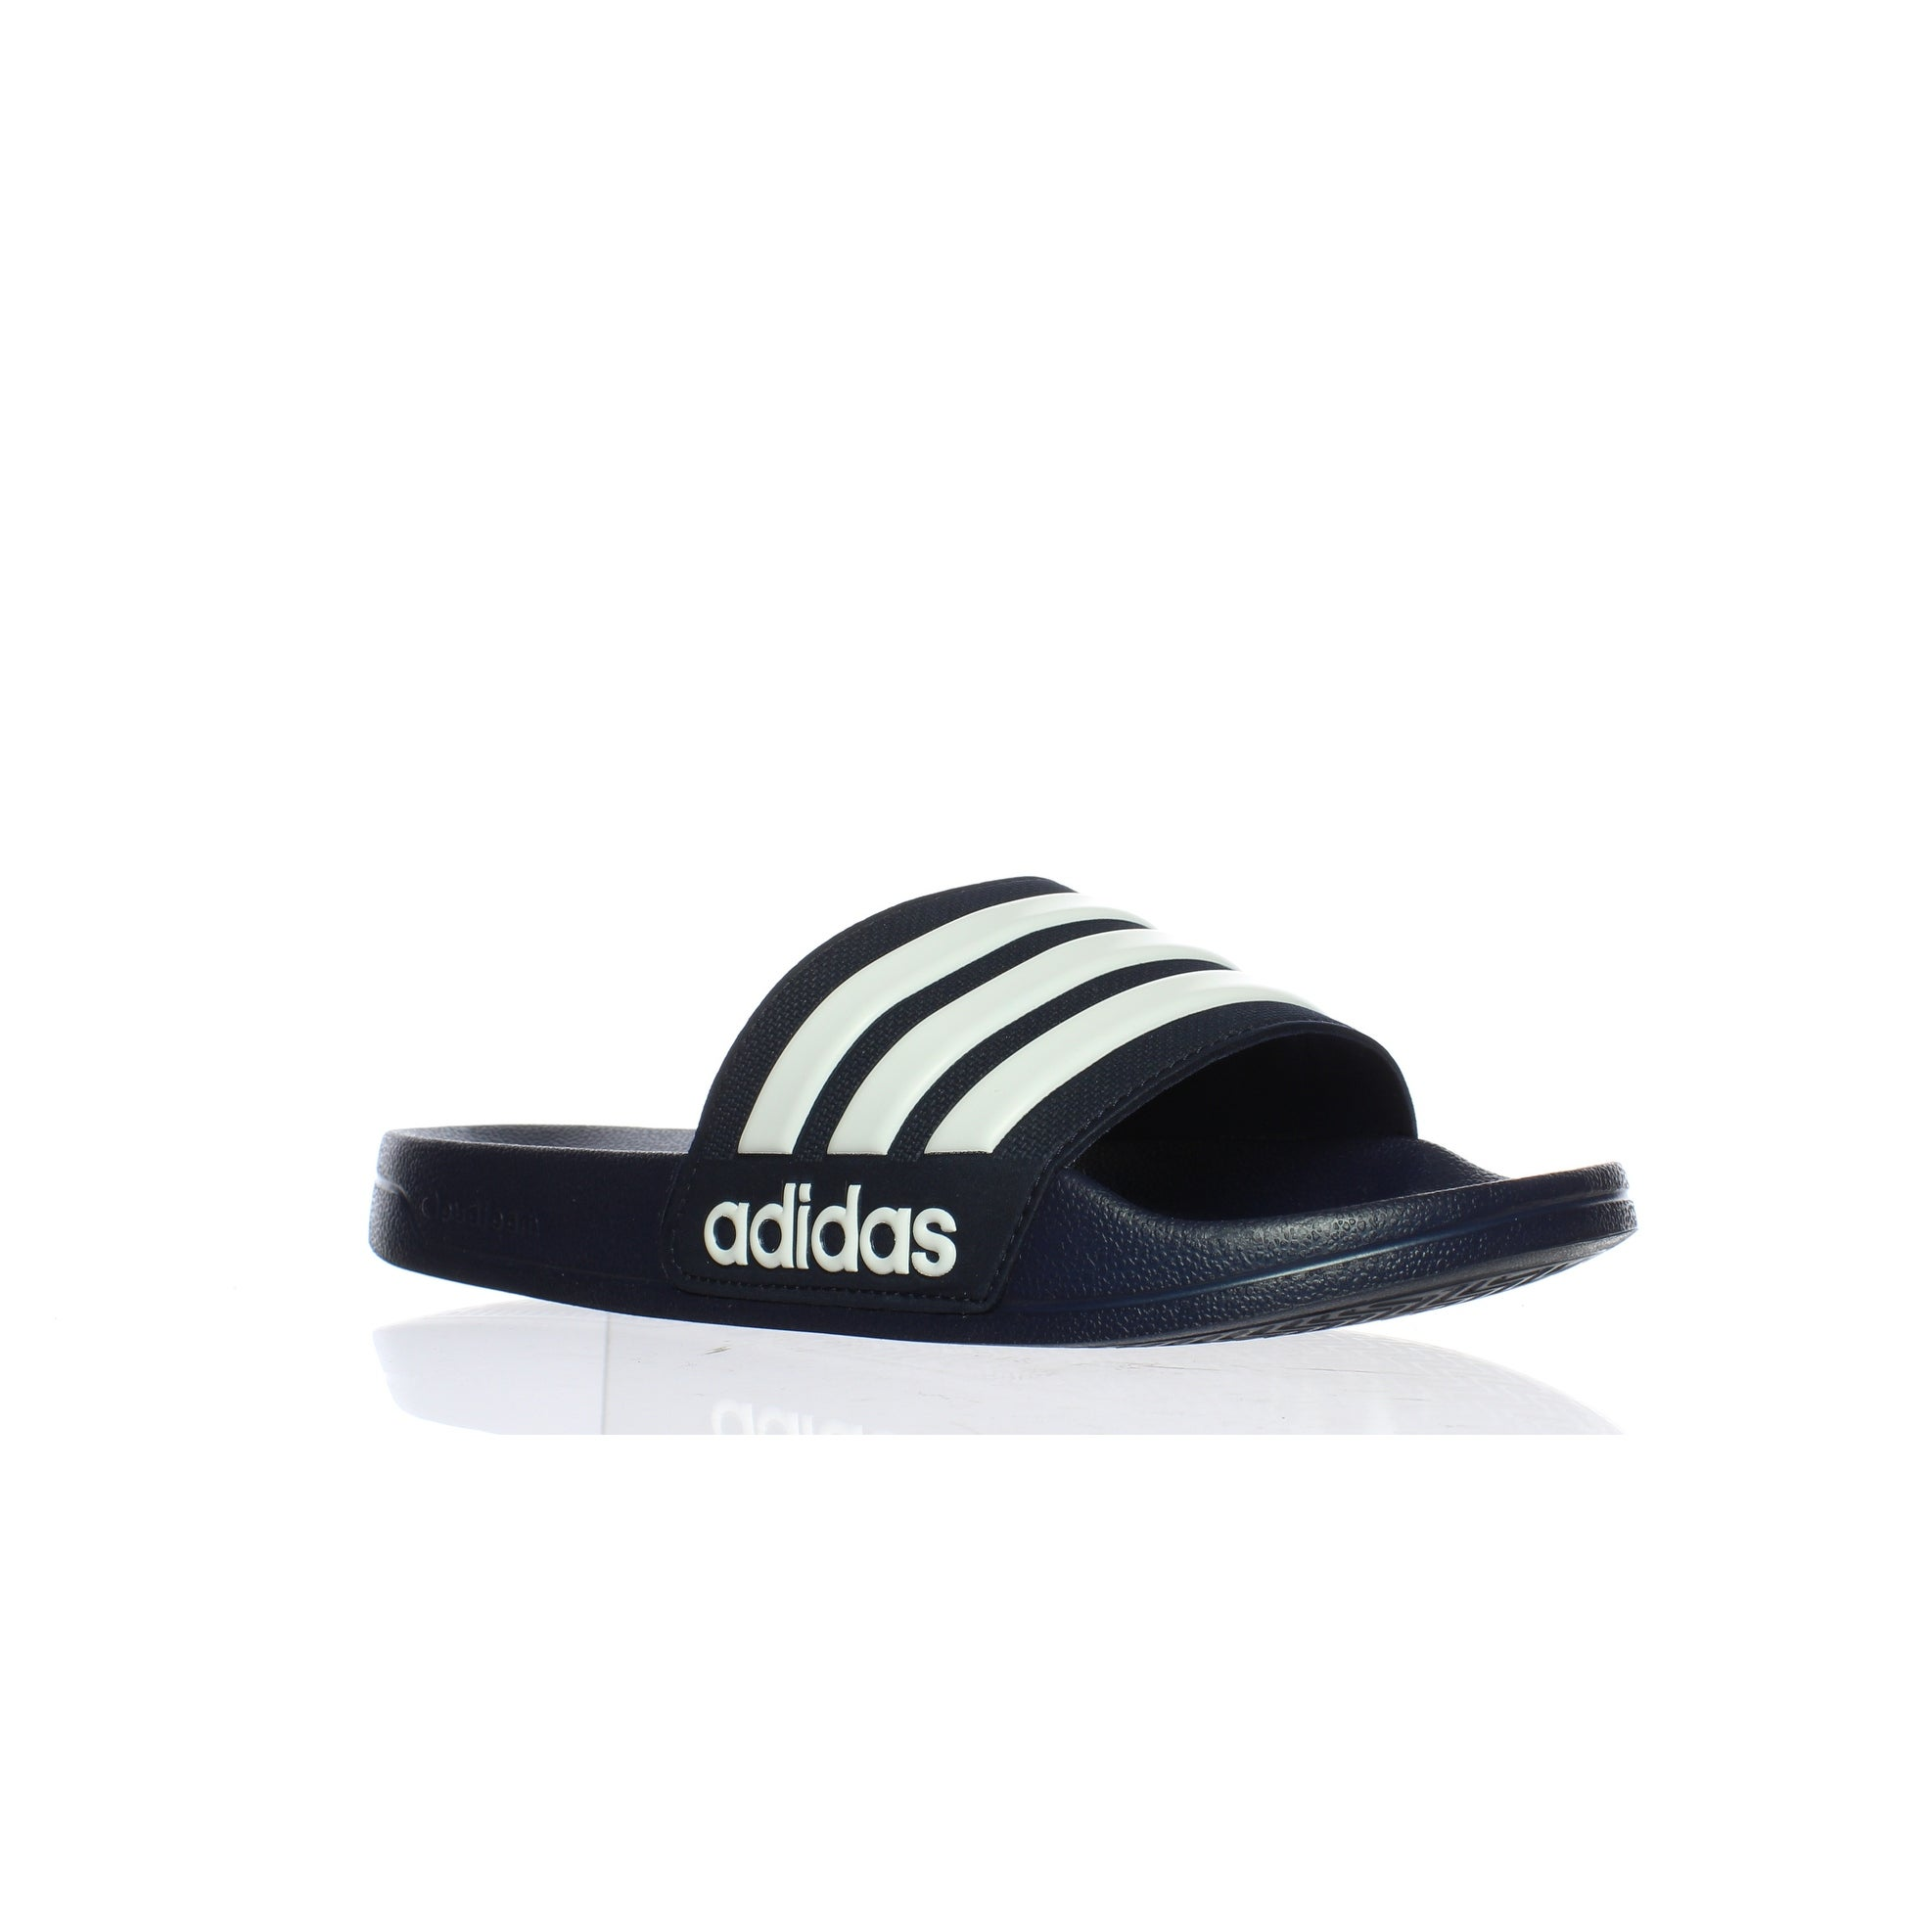 4e8fbd77ebbe Buy Adidas Men s Sandals Online at Overstock